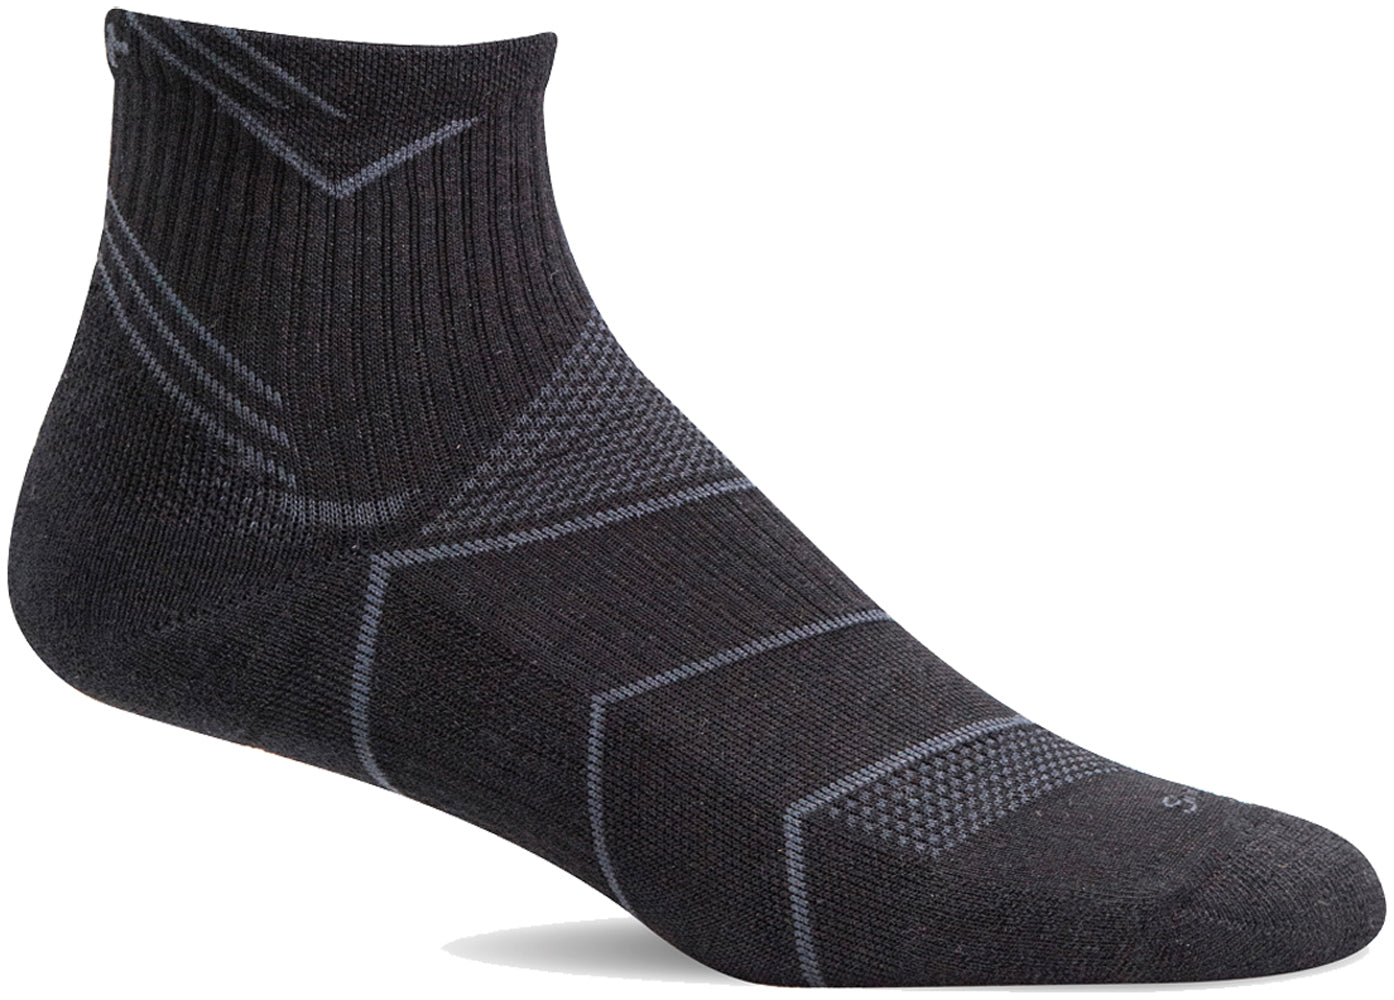 Sockwell Women's Incline Quarter Sock in Black Solid color from the side